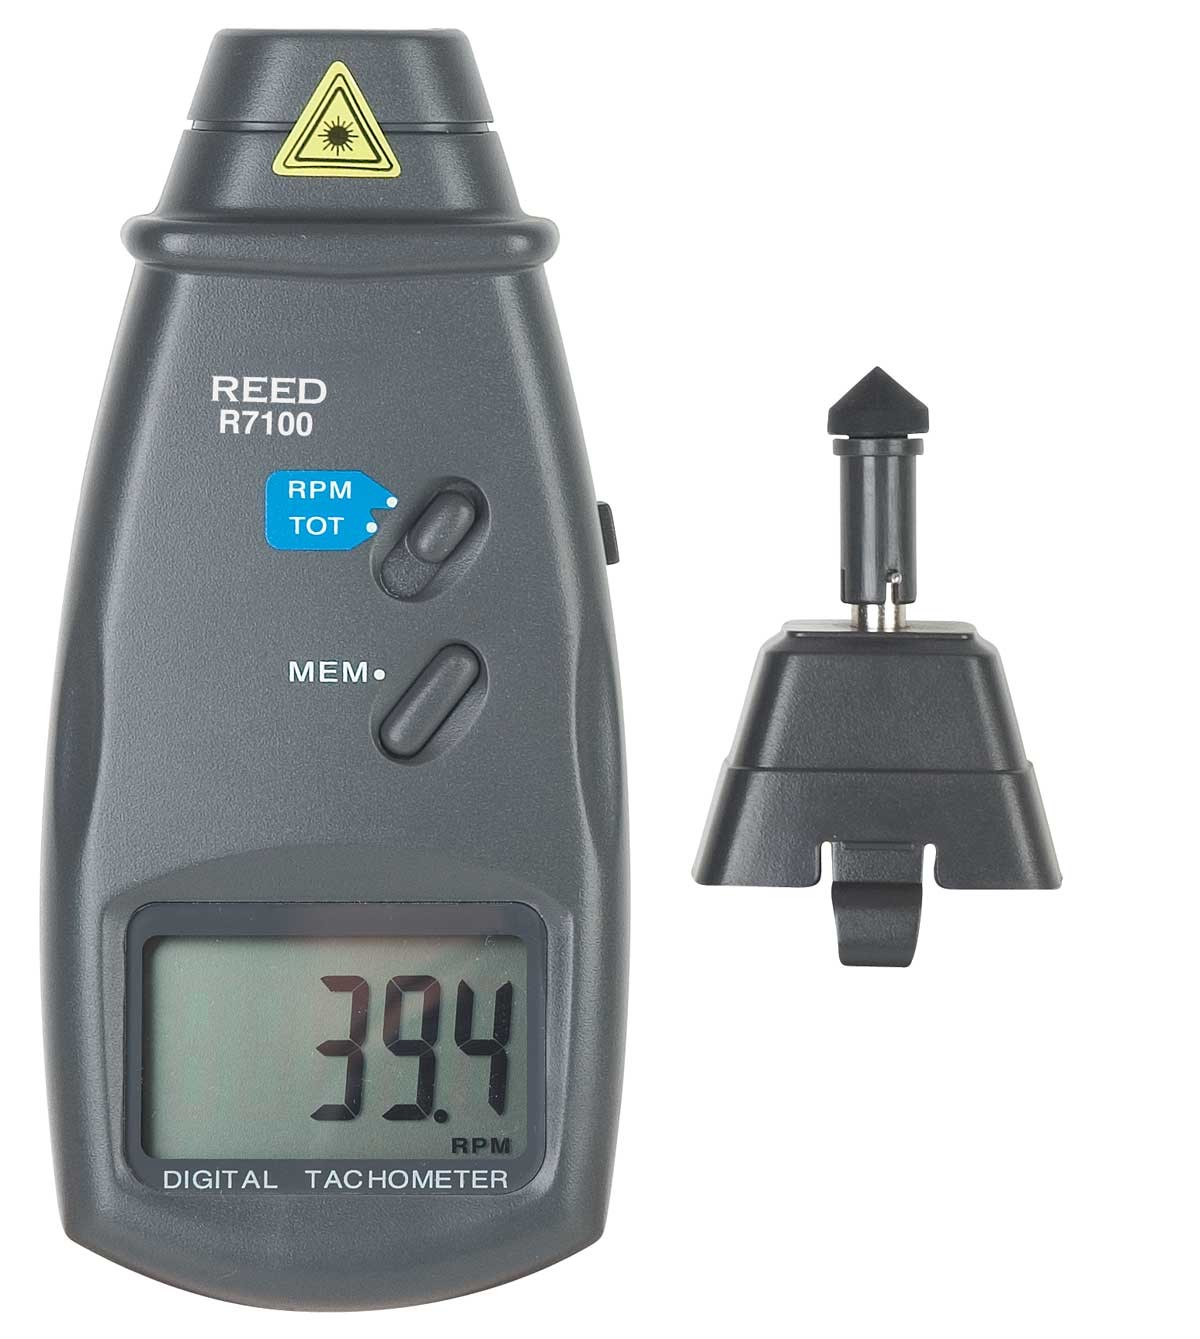 REED R7100 Combination Contact / Laser Photo Tachometer -Included